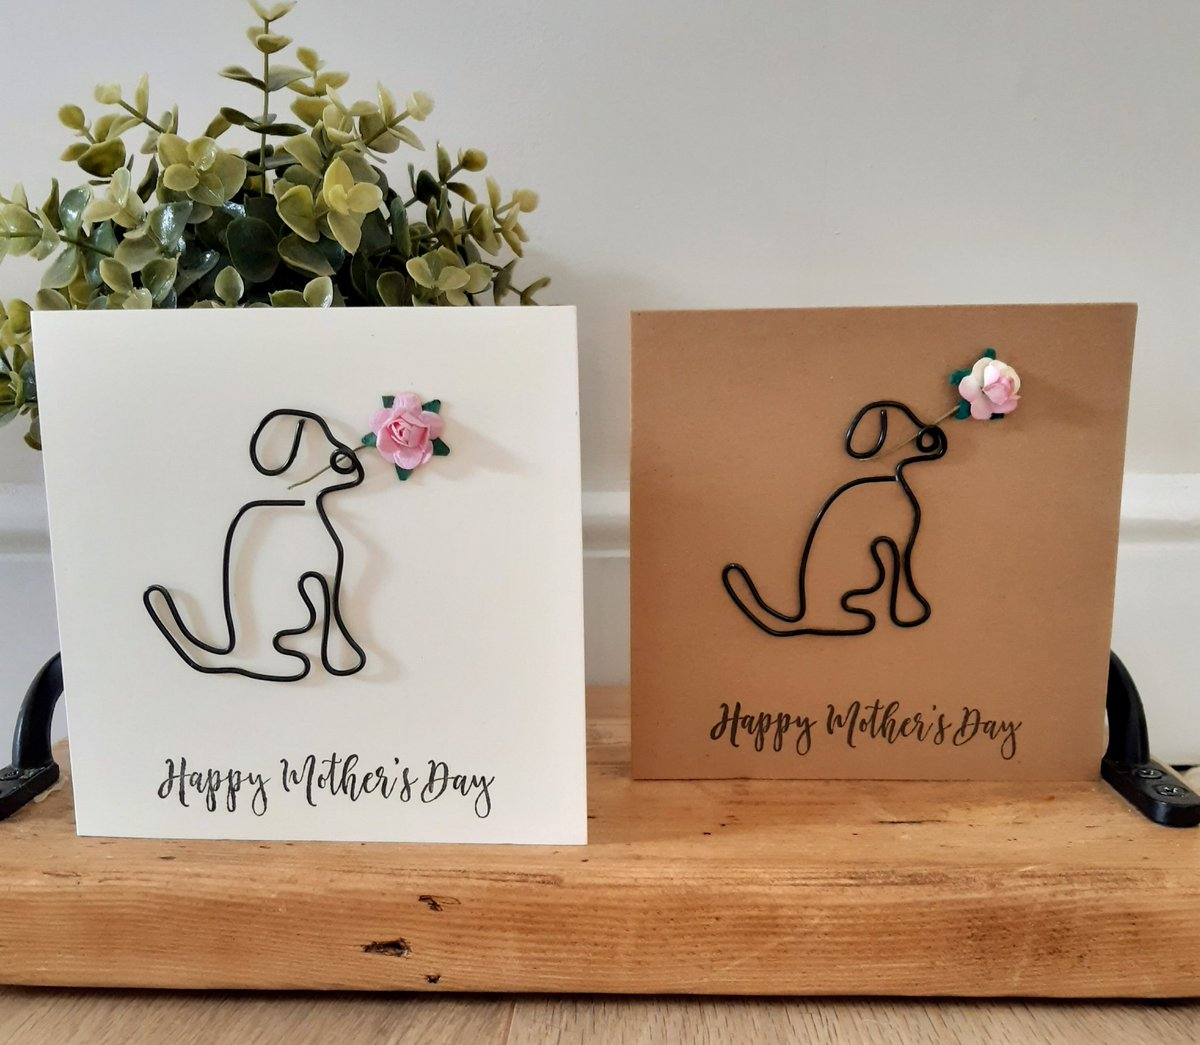 Hi #womaninbiz #womaninbizhour #inbizhour #MHHSBD #QueenOf  #dogsoftwitter #dogs #MothersDay    My dogs are flying off the shelves.